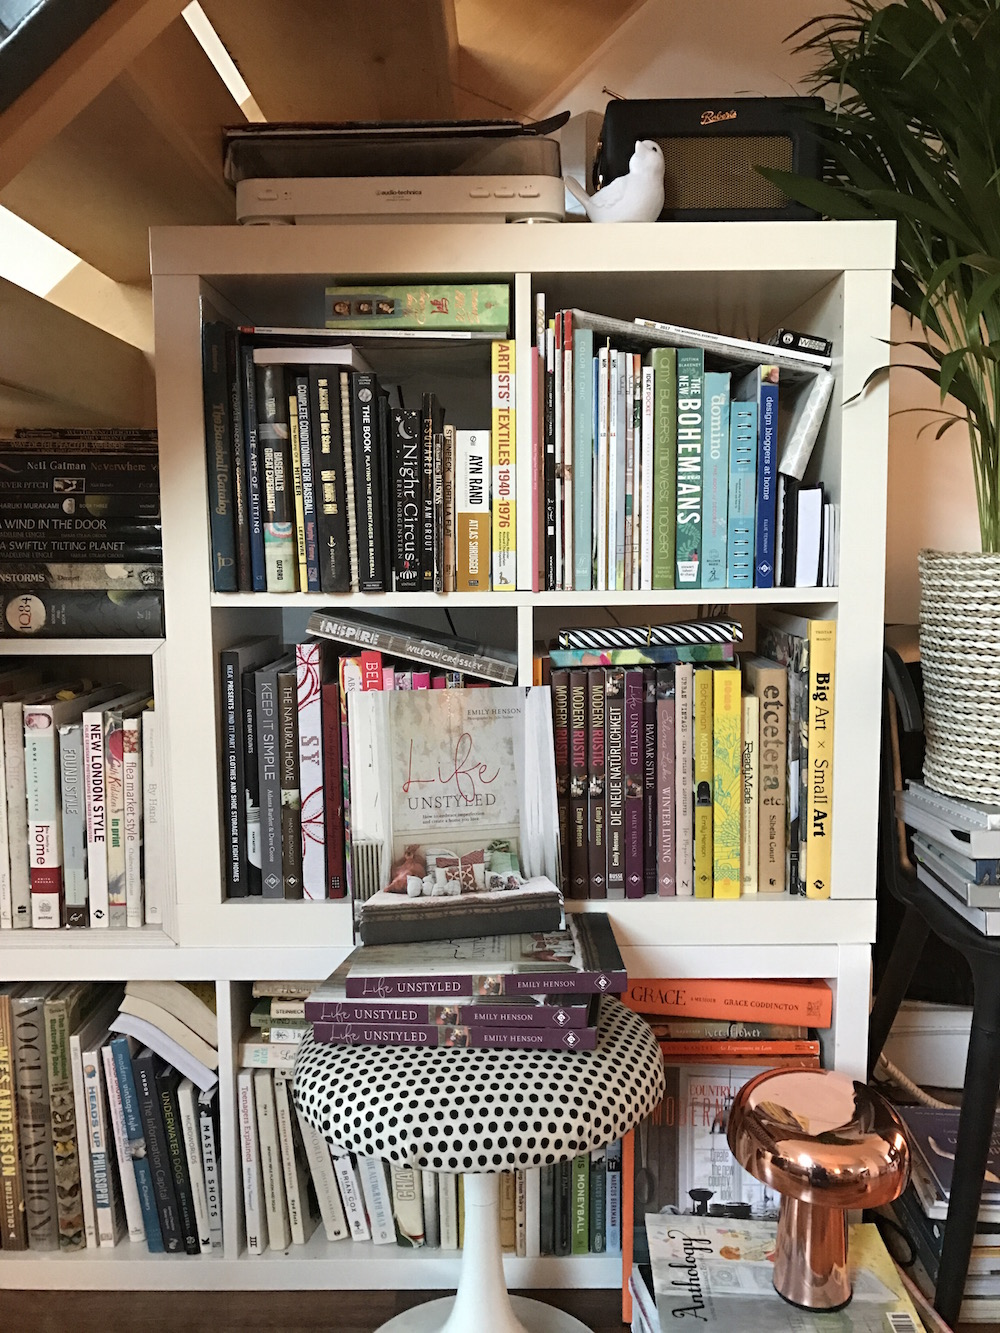 Life Unstyled messy bookshelves